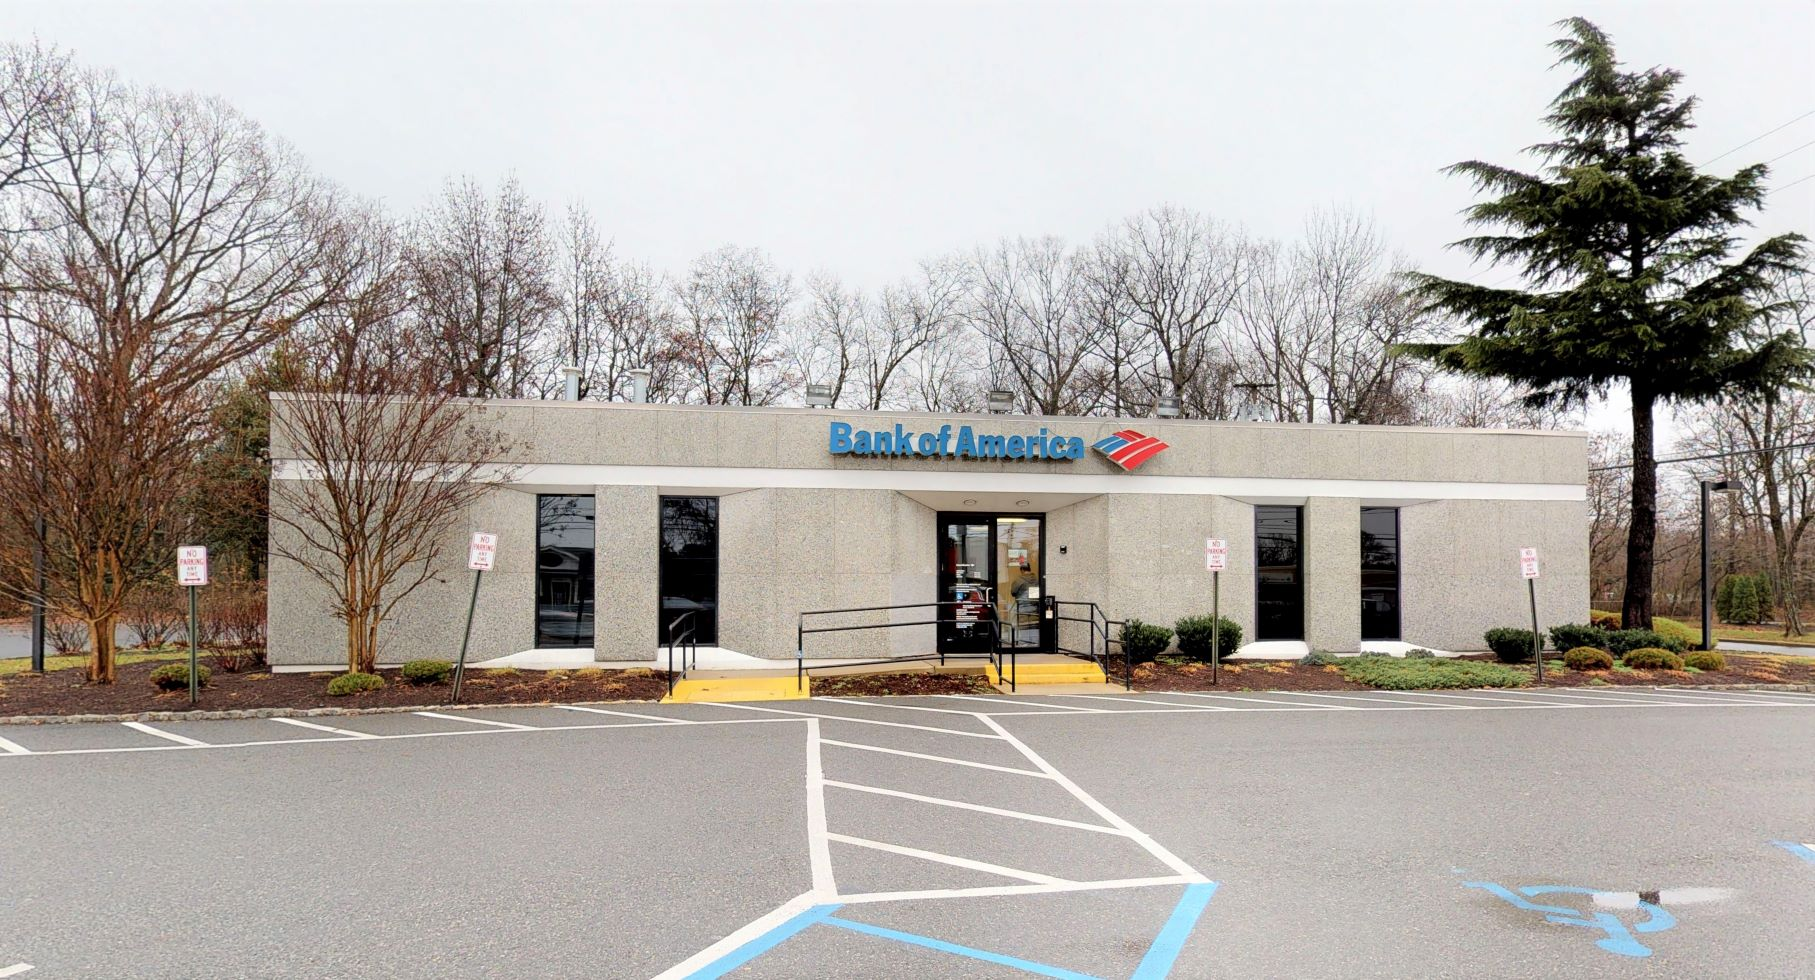 Bank of America financial center with drive-thru ATM | 3841 Bayshore Rd, North Cape May, NJ 08204